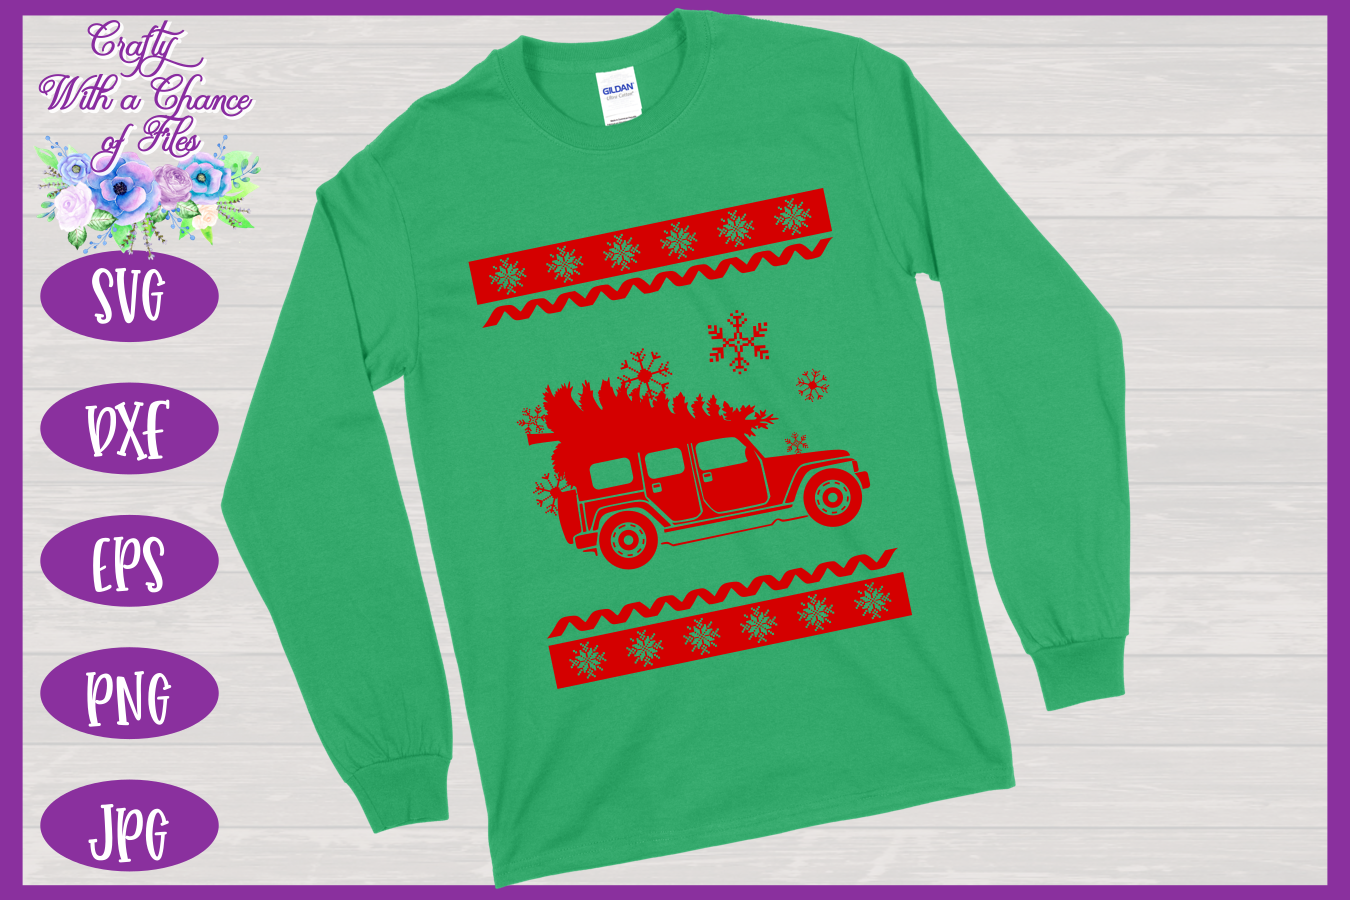 Christmas SVG - Ugly Sweater Party Shirt Design example image 4